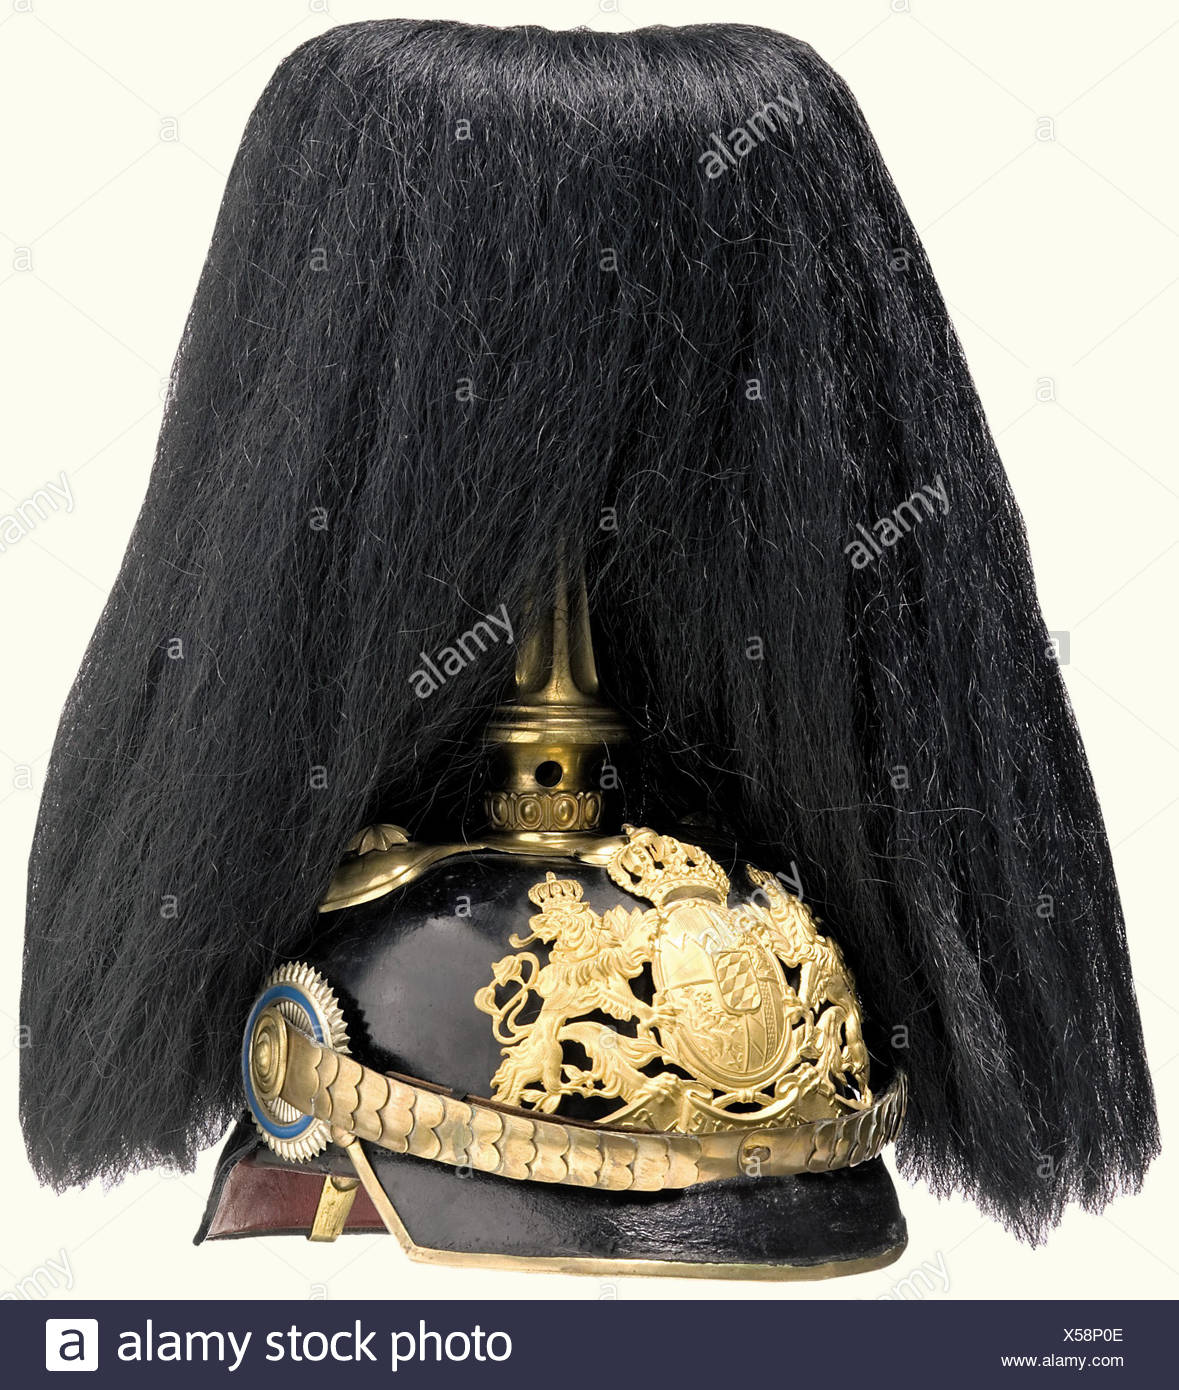 A model 1886/97 officer's helmet, Bavaria, Logistic Units Black lacquered leather skull. Frosted, gold-plated coat of arms plate. Cambered metal chinscales. Bavarian and imperial cockades. Brown ribbed silk lining. Black, bushy falling plume of buffalo hair on a fluted, gold-plated cone. Rare headgear, as all three Bavarian logistic battalions together only had 50 active officers. historic, historical, 19th century, Bavaria, Bavarian, German, Germany, Southern Germany, the South of Germany, object, objects, stills, militaria, clipping, cut out, cut-out, cut-out, Additional-Rights-Clearances-NA - Stock Image